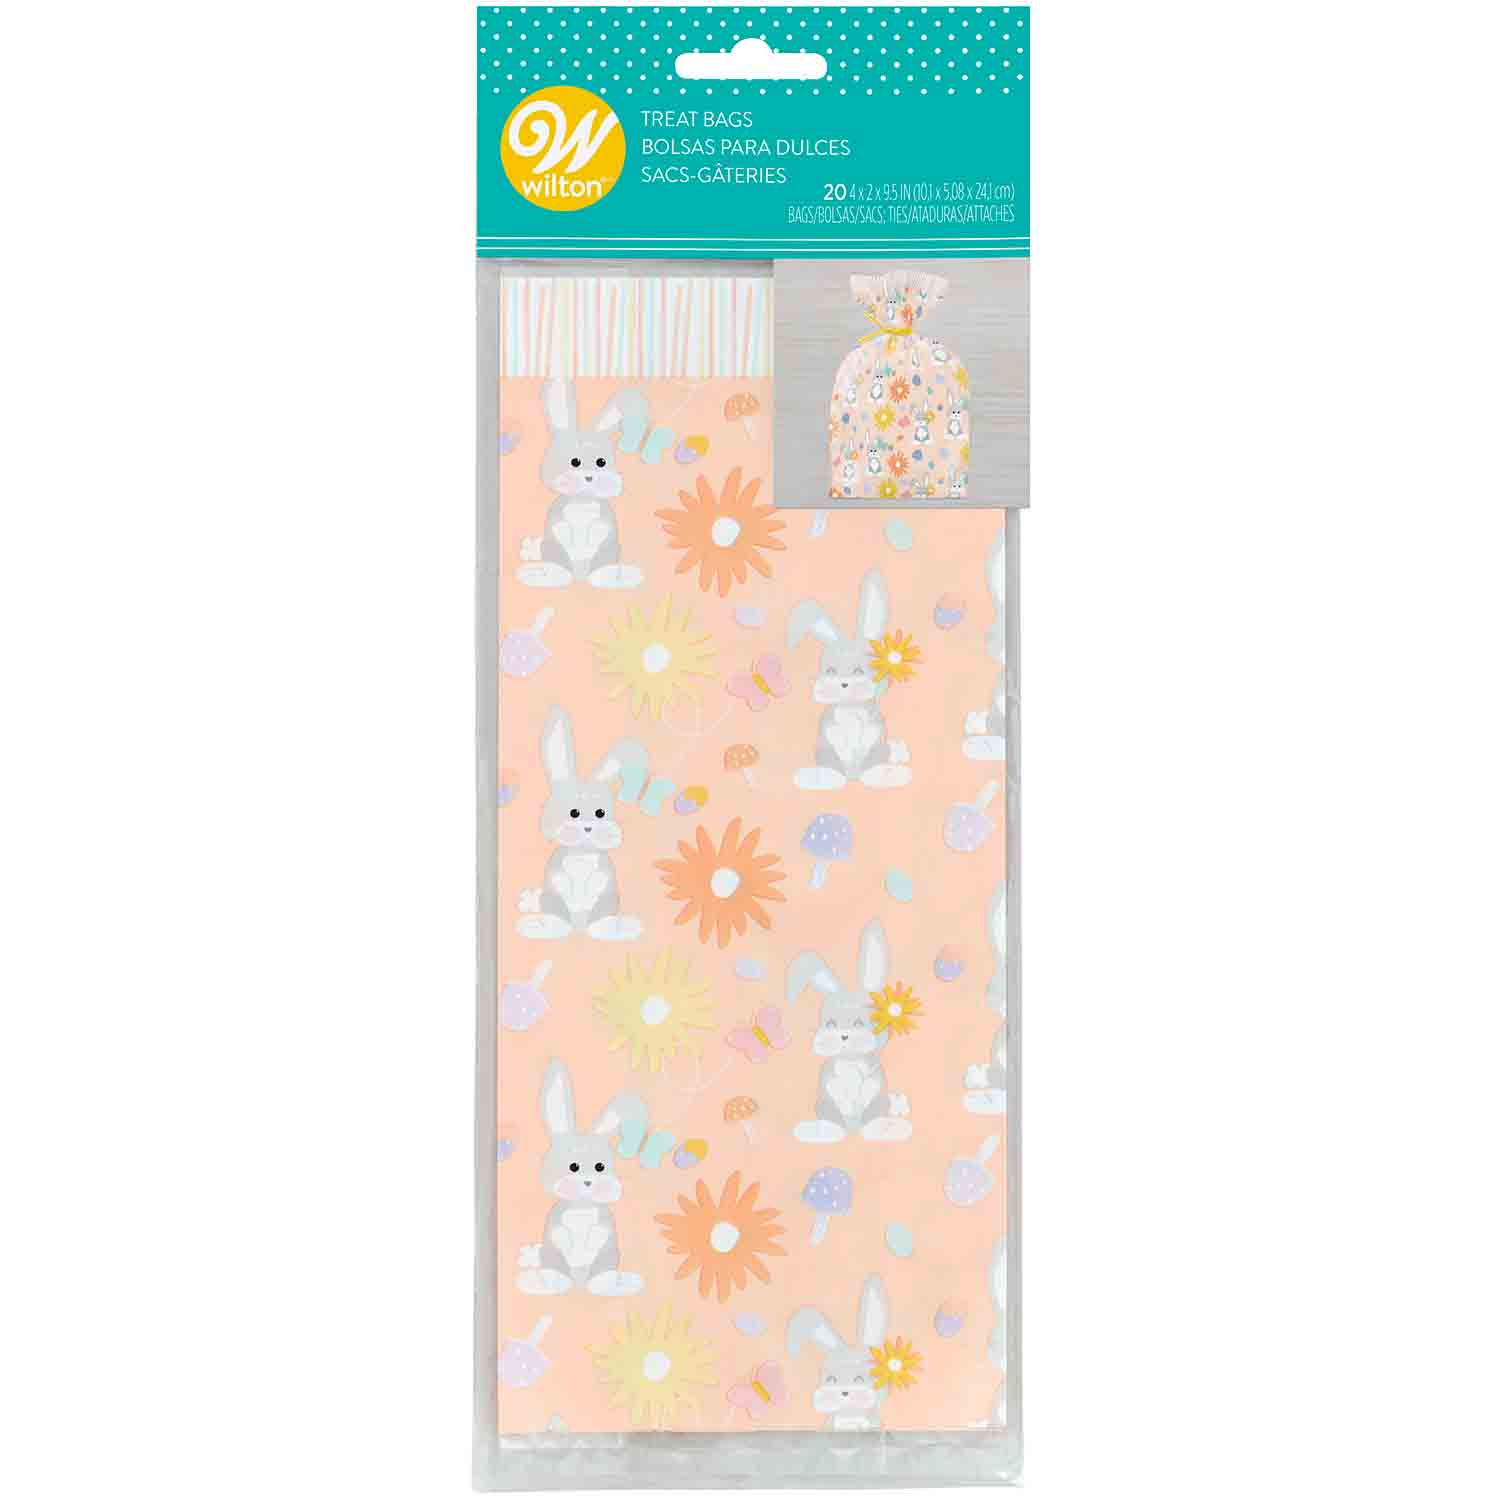 Floral Bunny Treat Bags